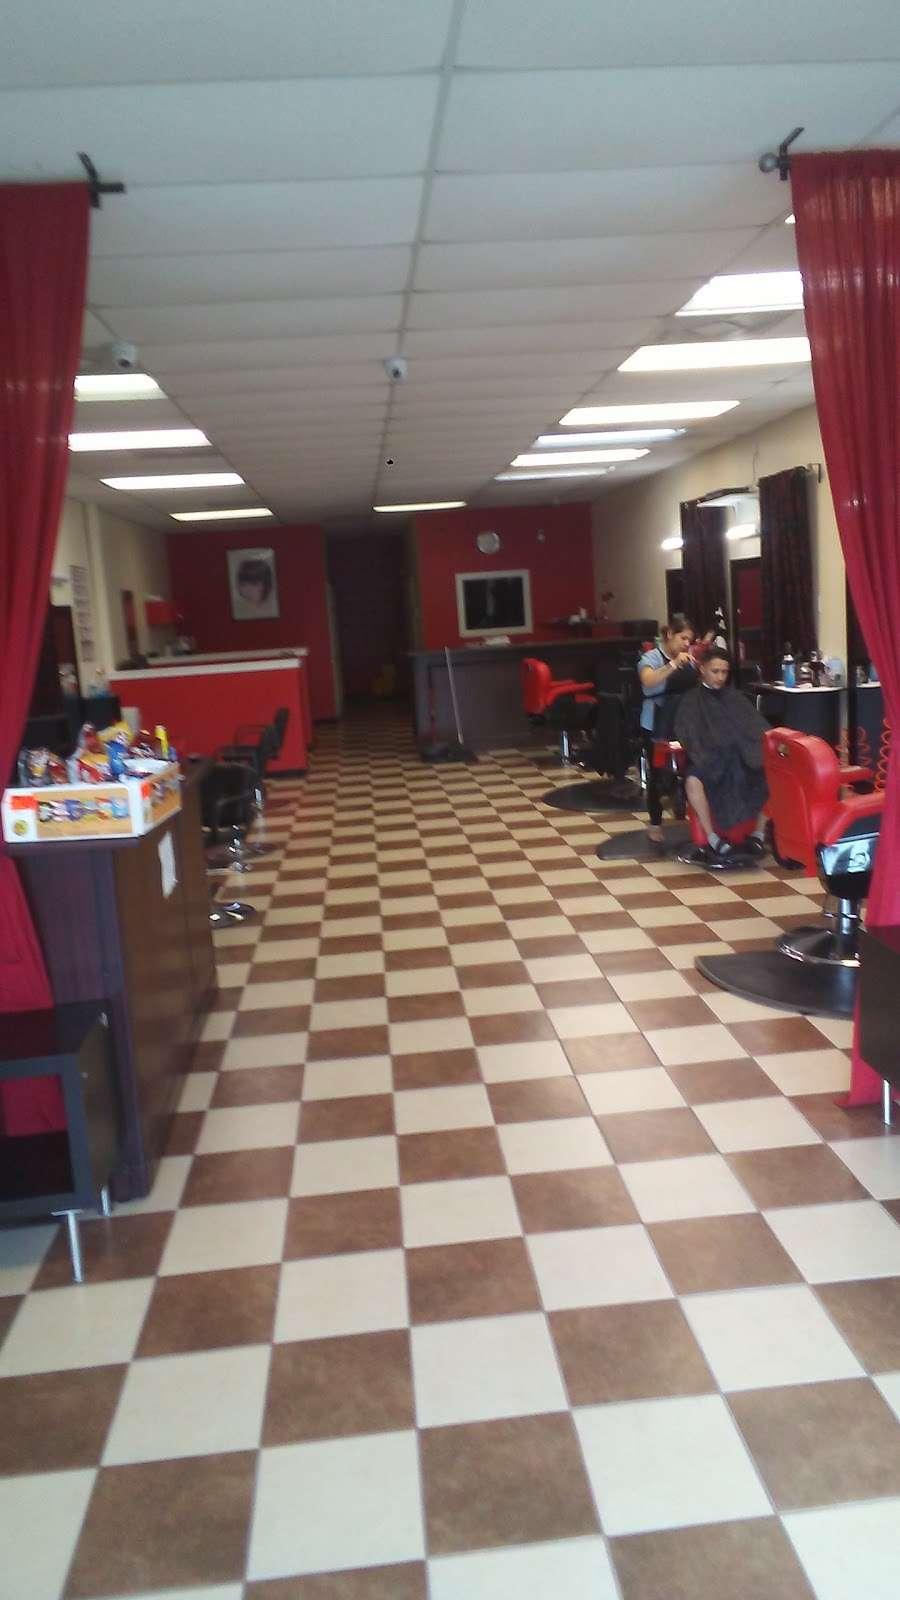 new style salon and barbershop - hair care  | Photo 3 of 10 | Address: 917 Greens Rd, Houston, TX 77060, USA | Phone: (281) 873-2121